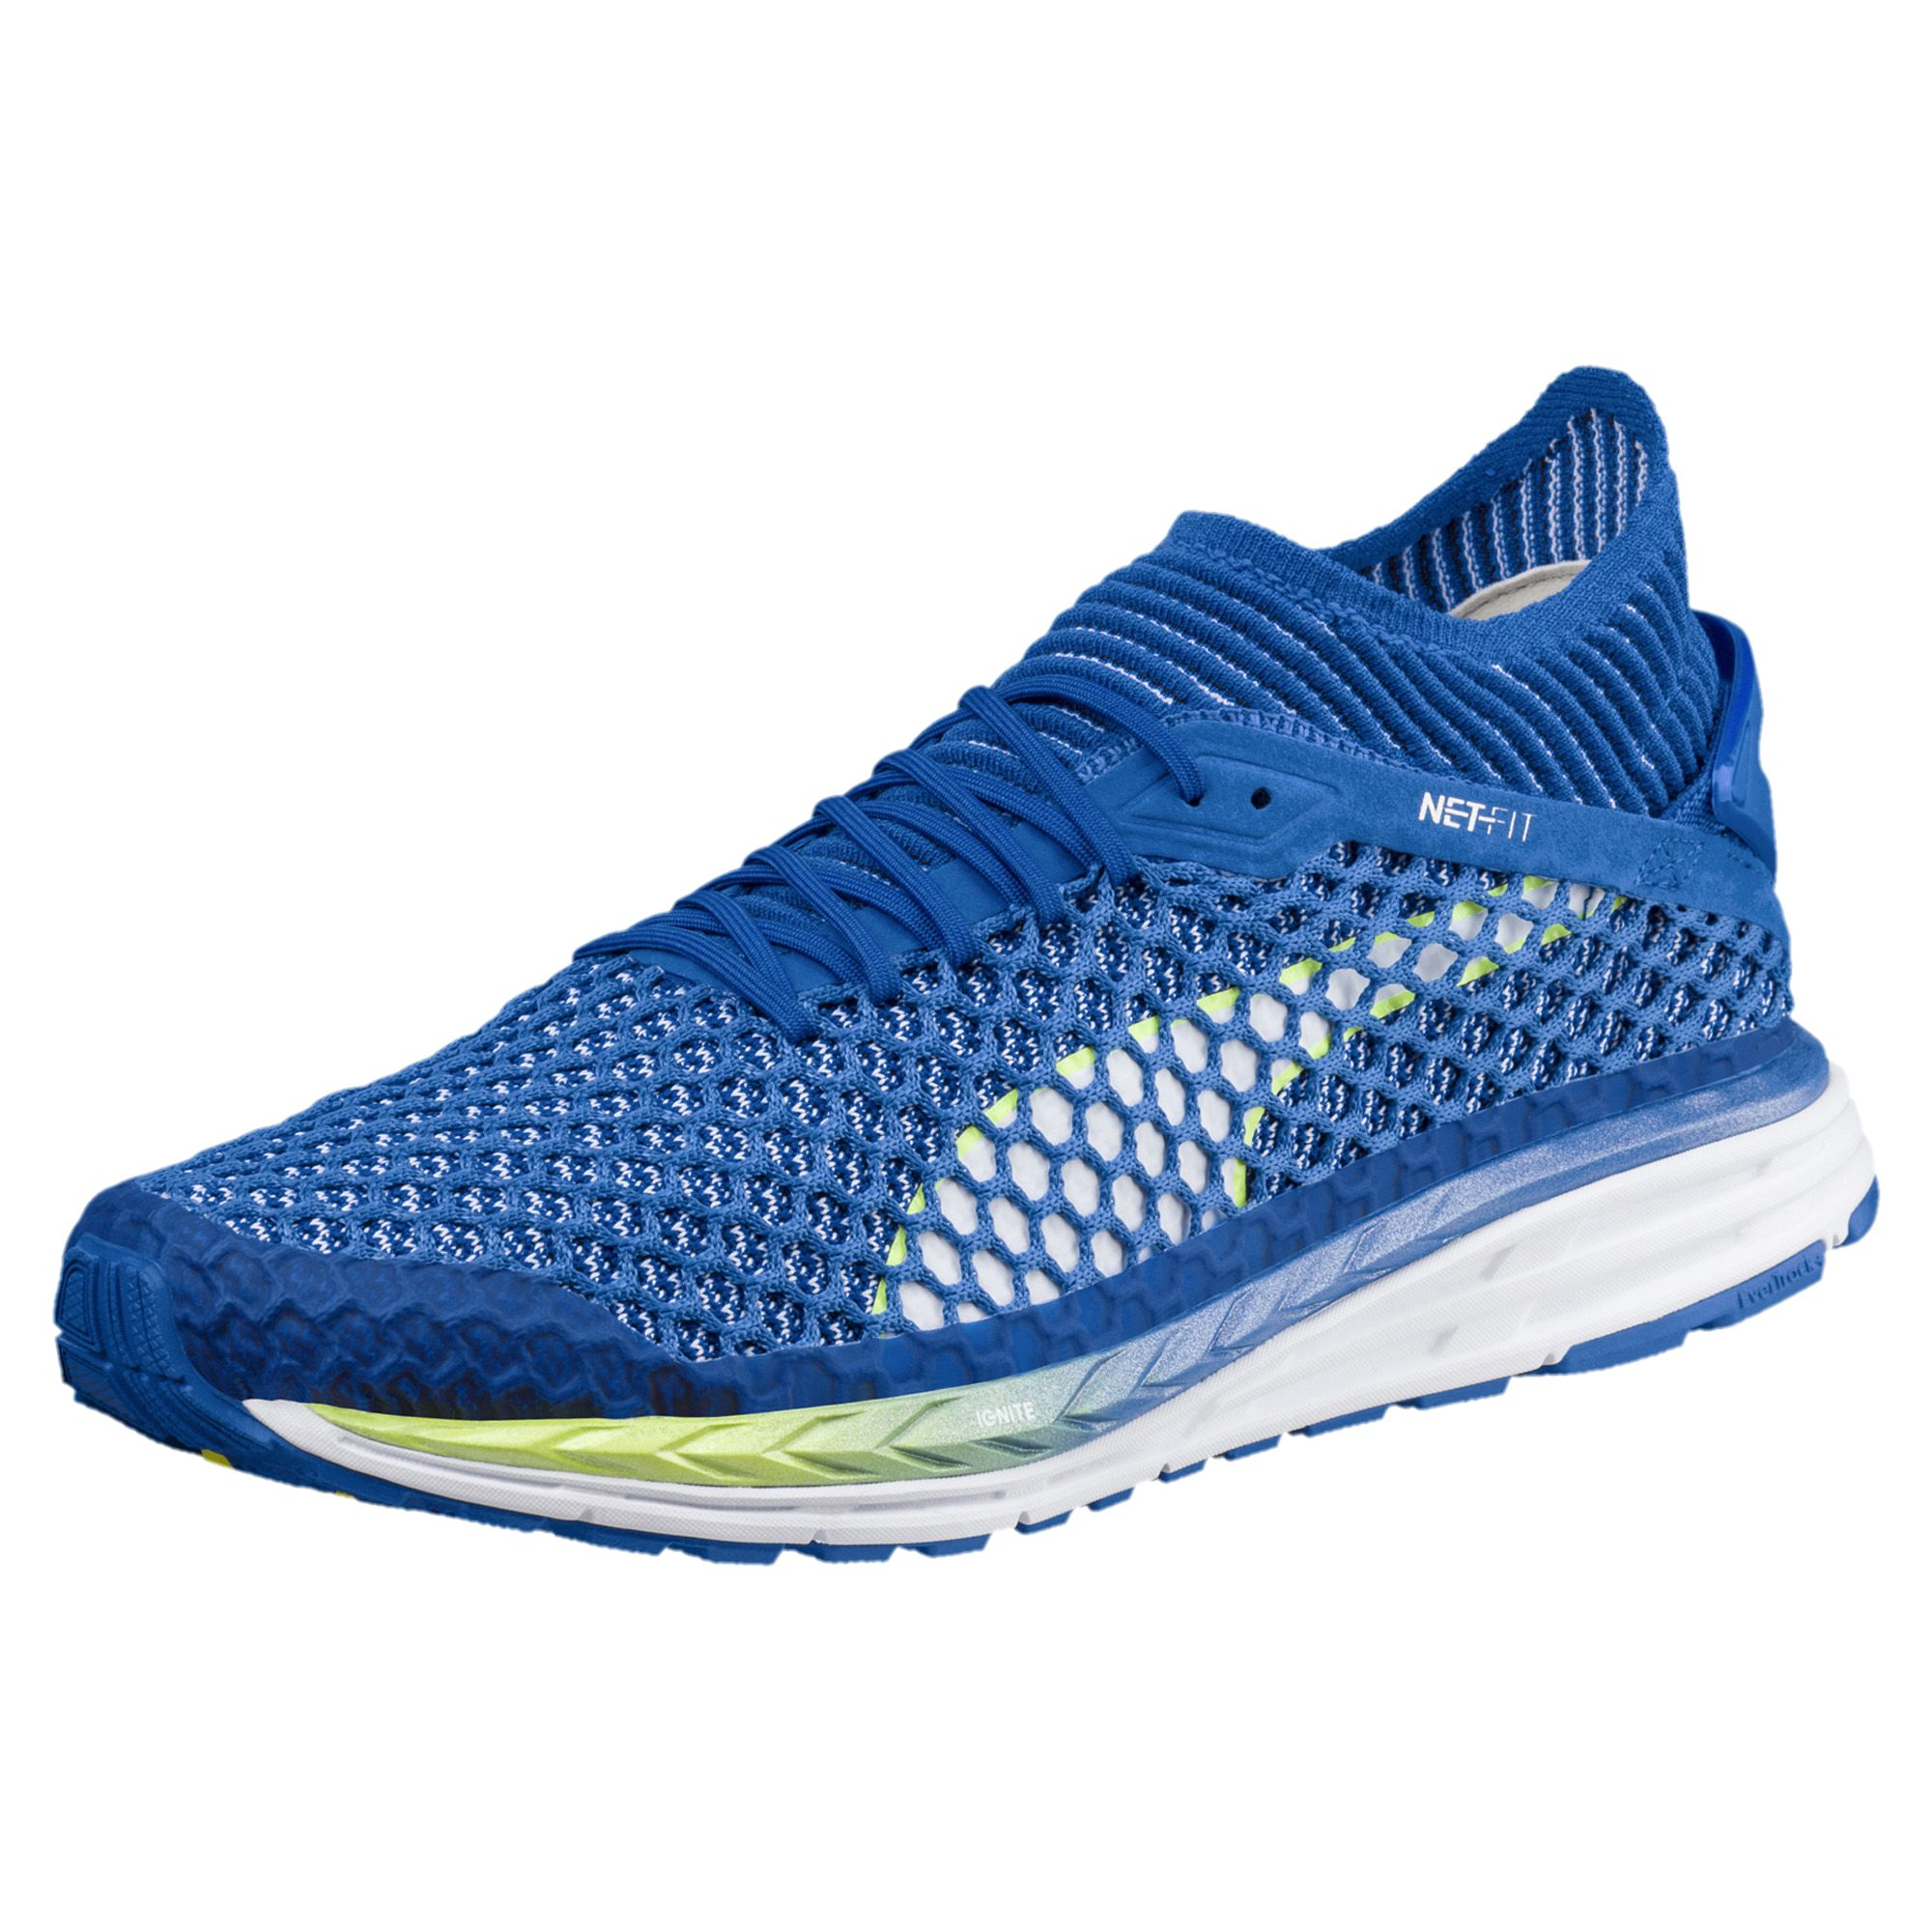 puma speed ignite netfit 2